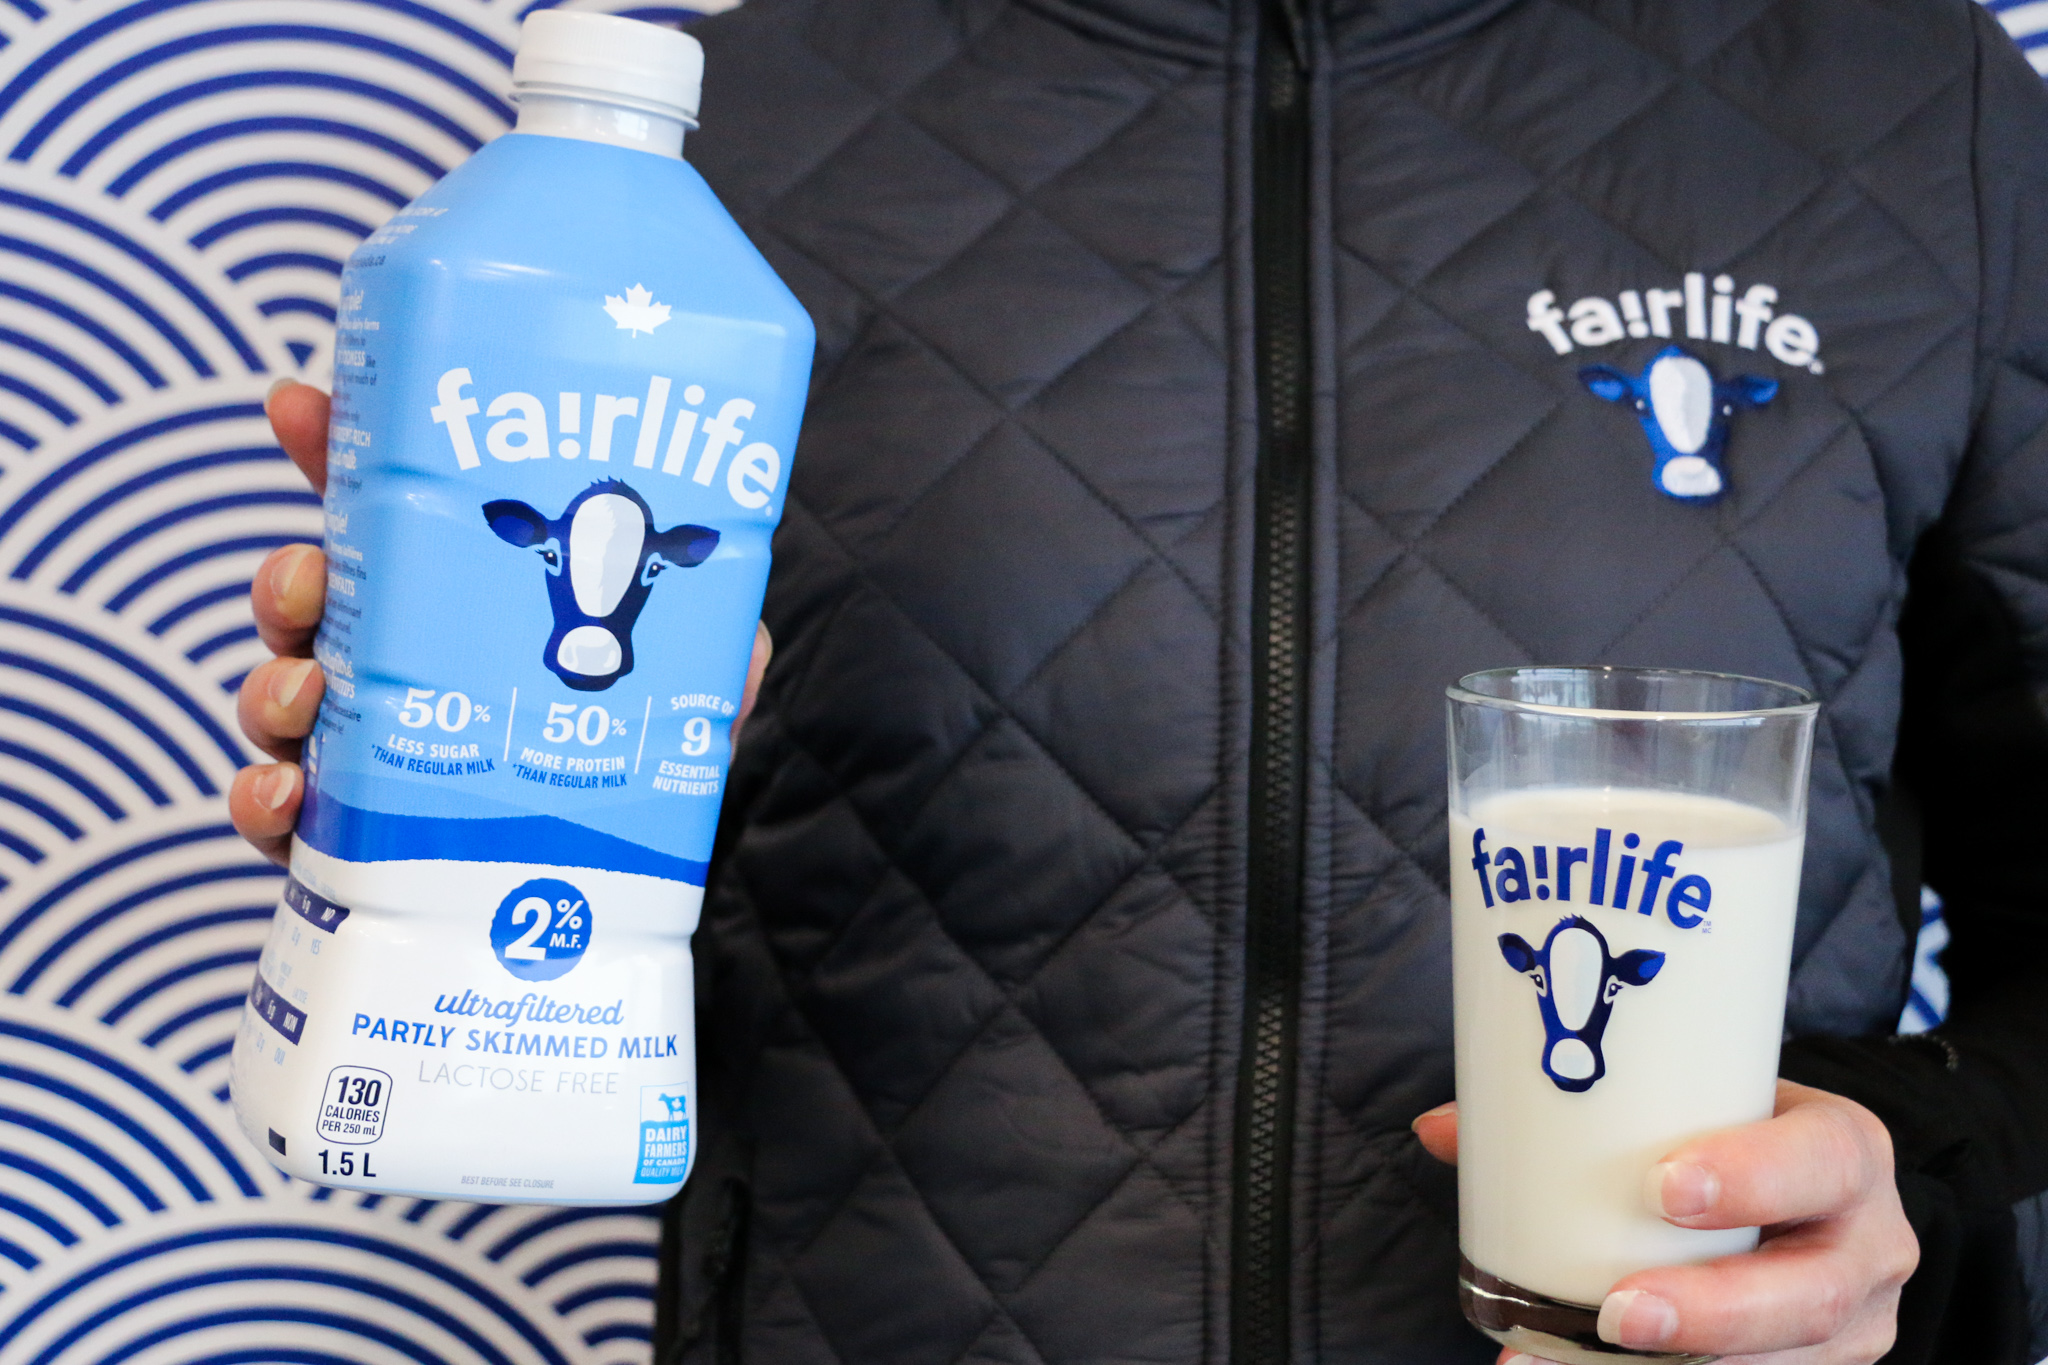 A person holding a bottle of fairlife® milk and a glass of milk